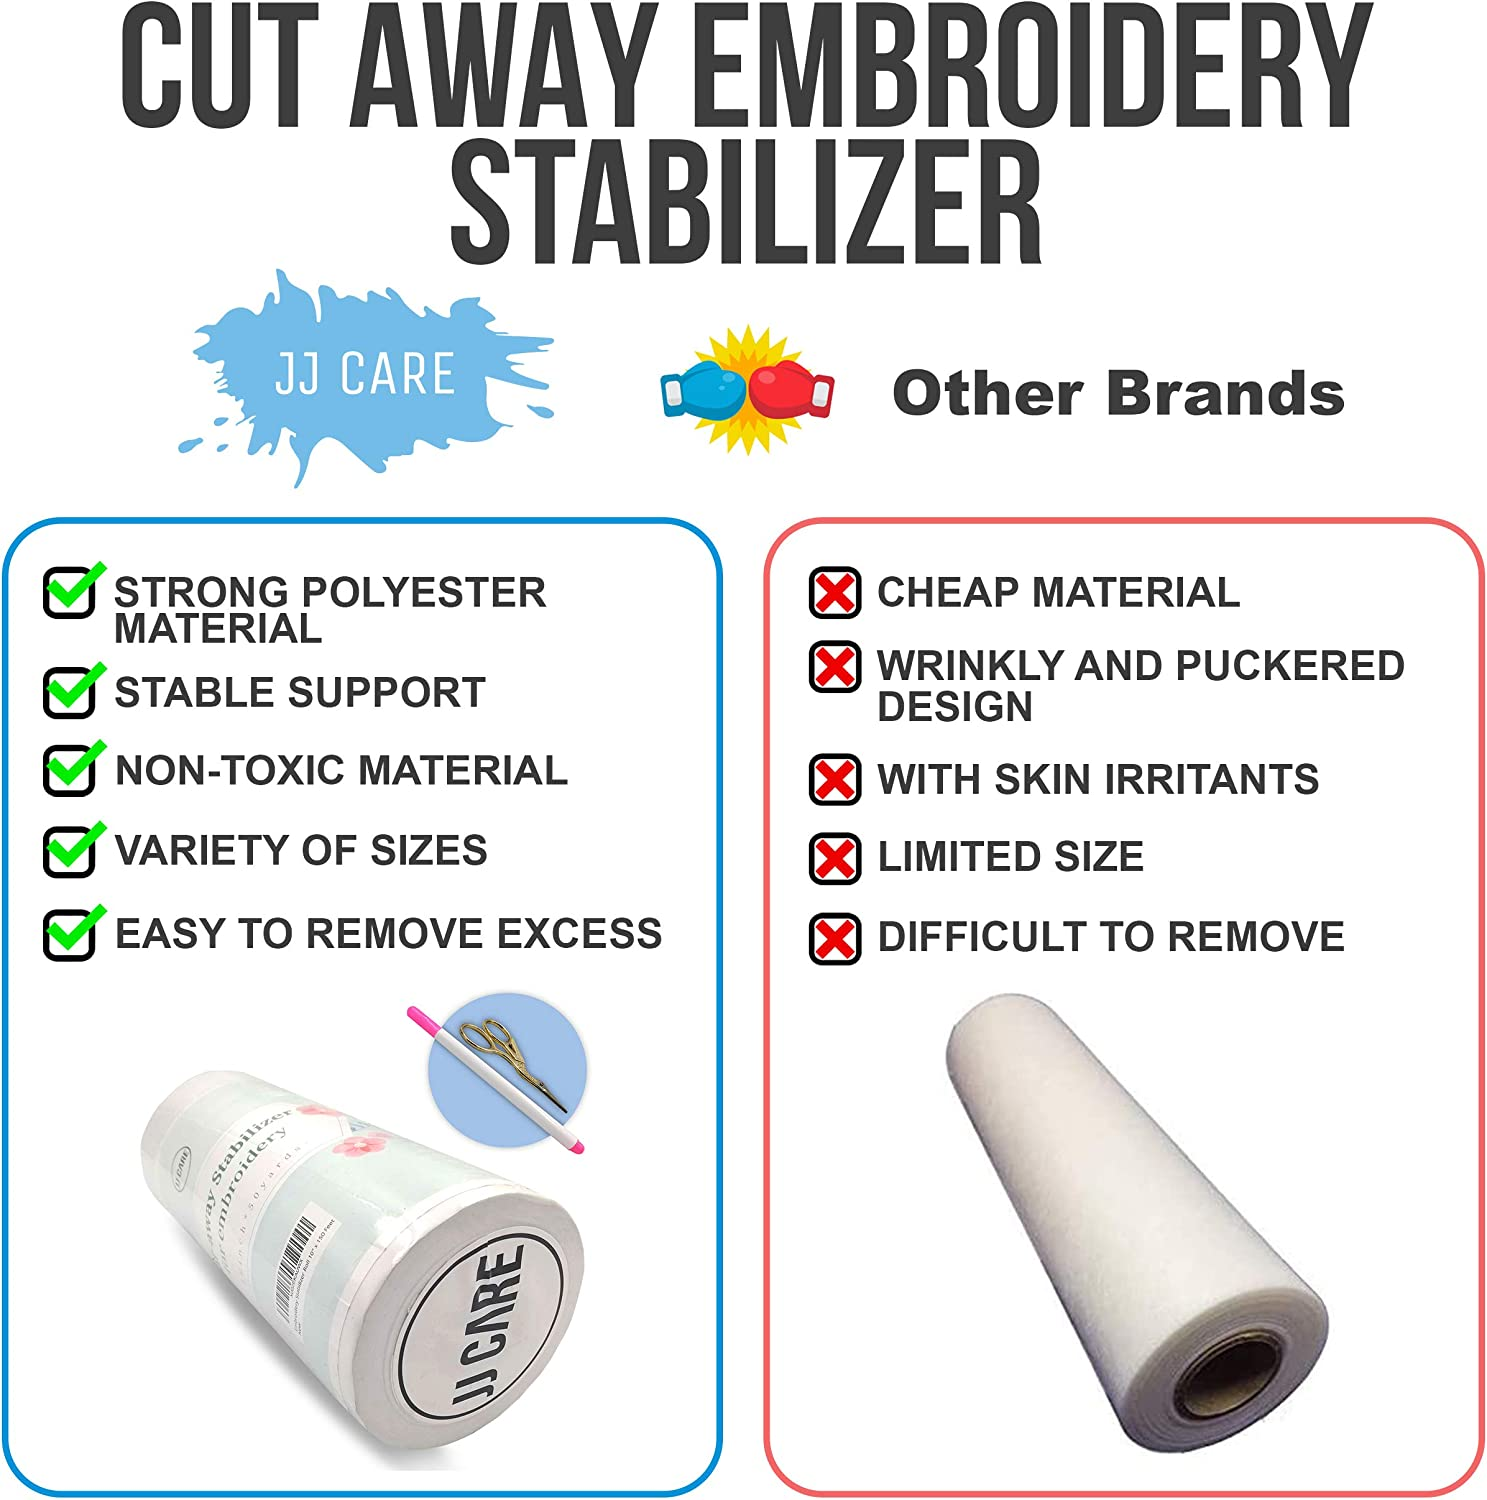 "Cutaway Embroidery Stabilizer 12/"" x 51 Yards Medium 80gsm Polymesh Stabilizer Cut-Away Stabilizer for Machine Embroidery with Free Pen /& Scissors Cut Away Embroidery Backing Premium White"